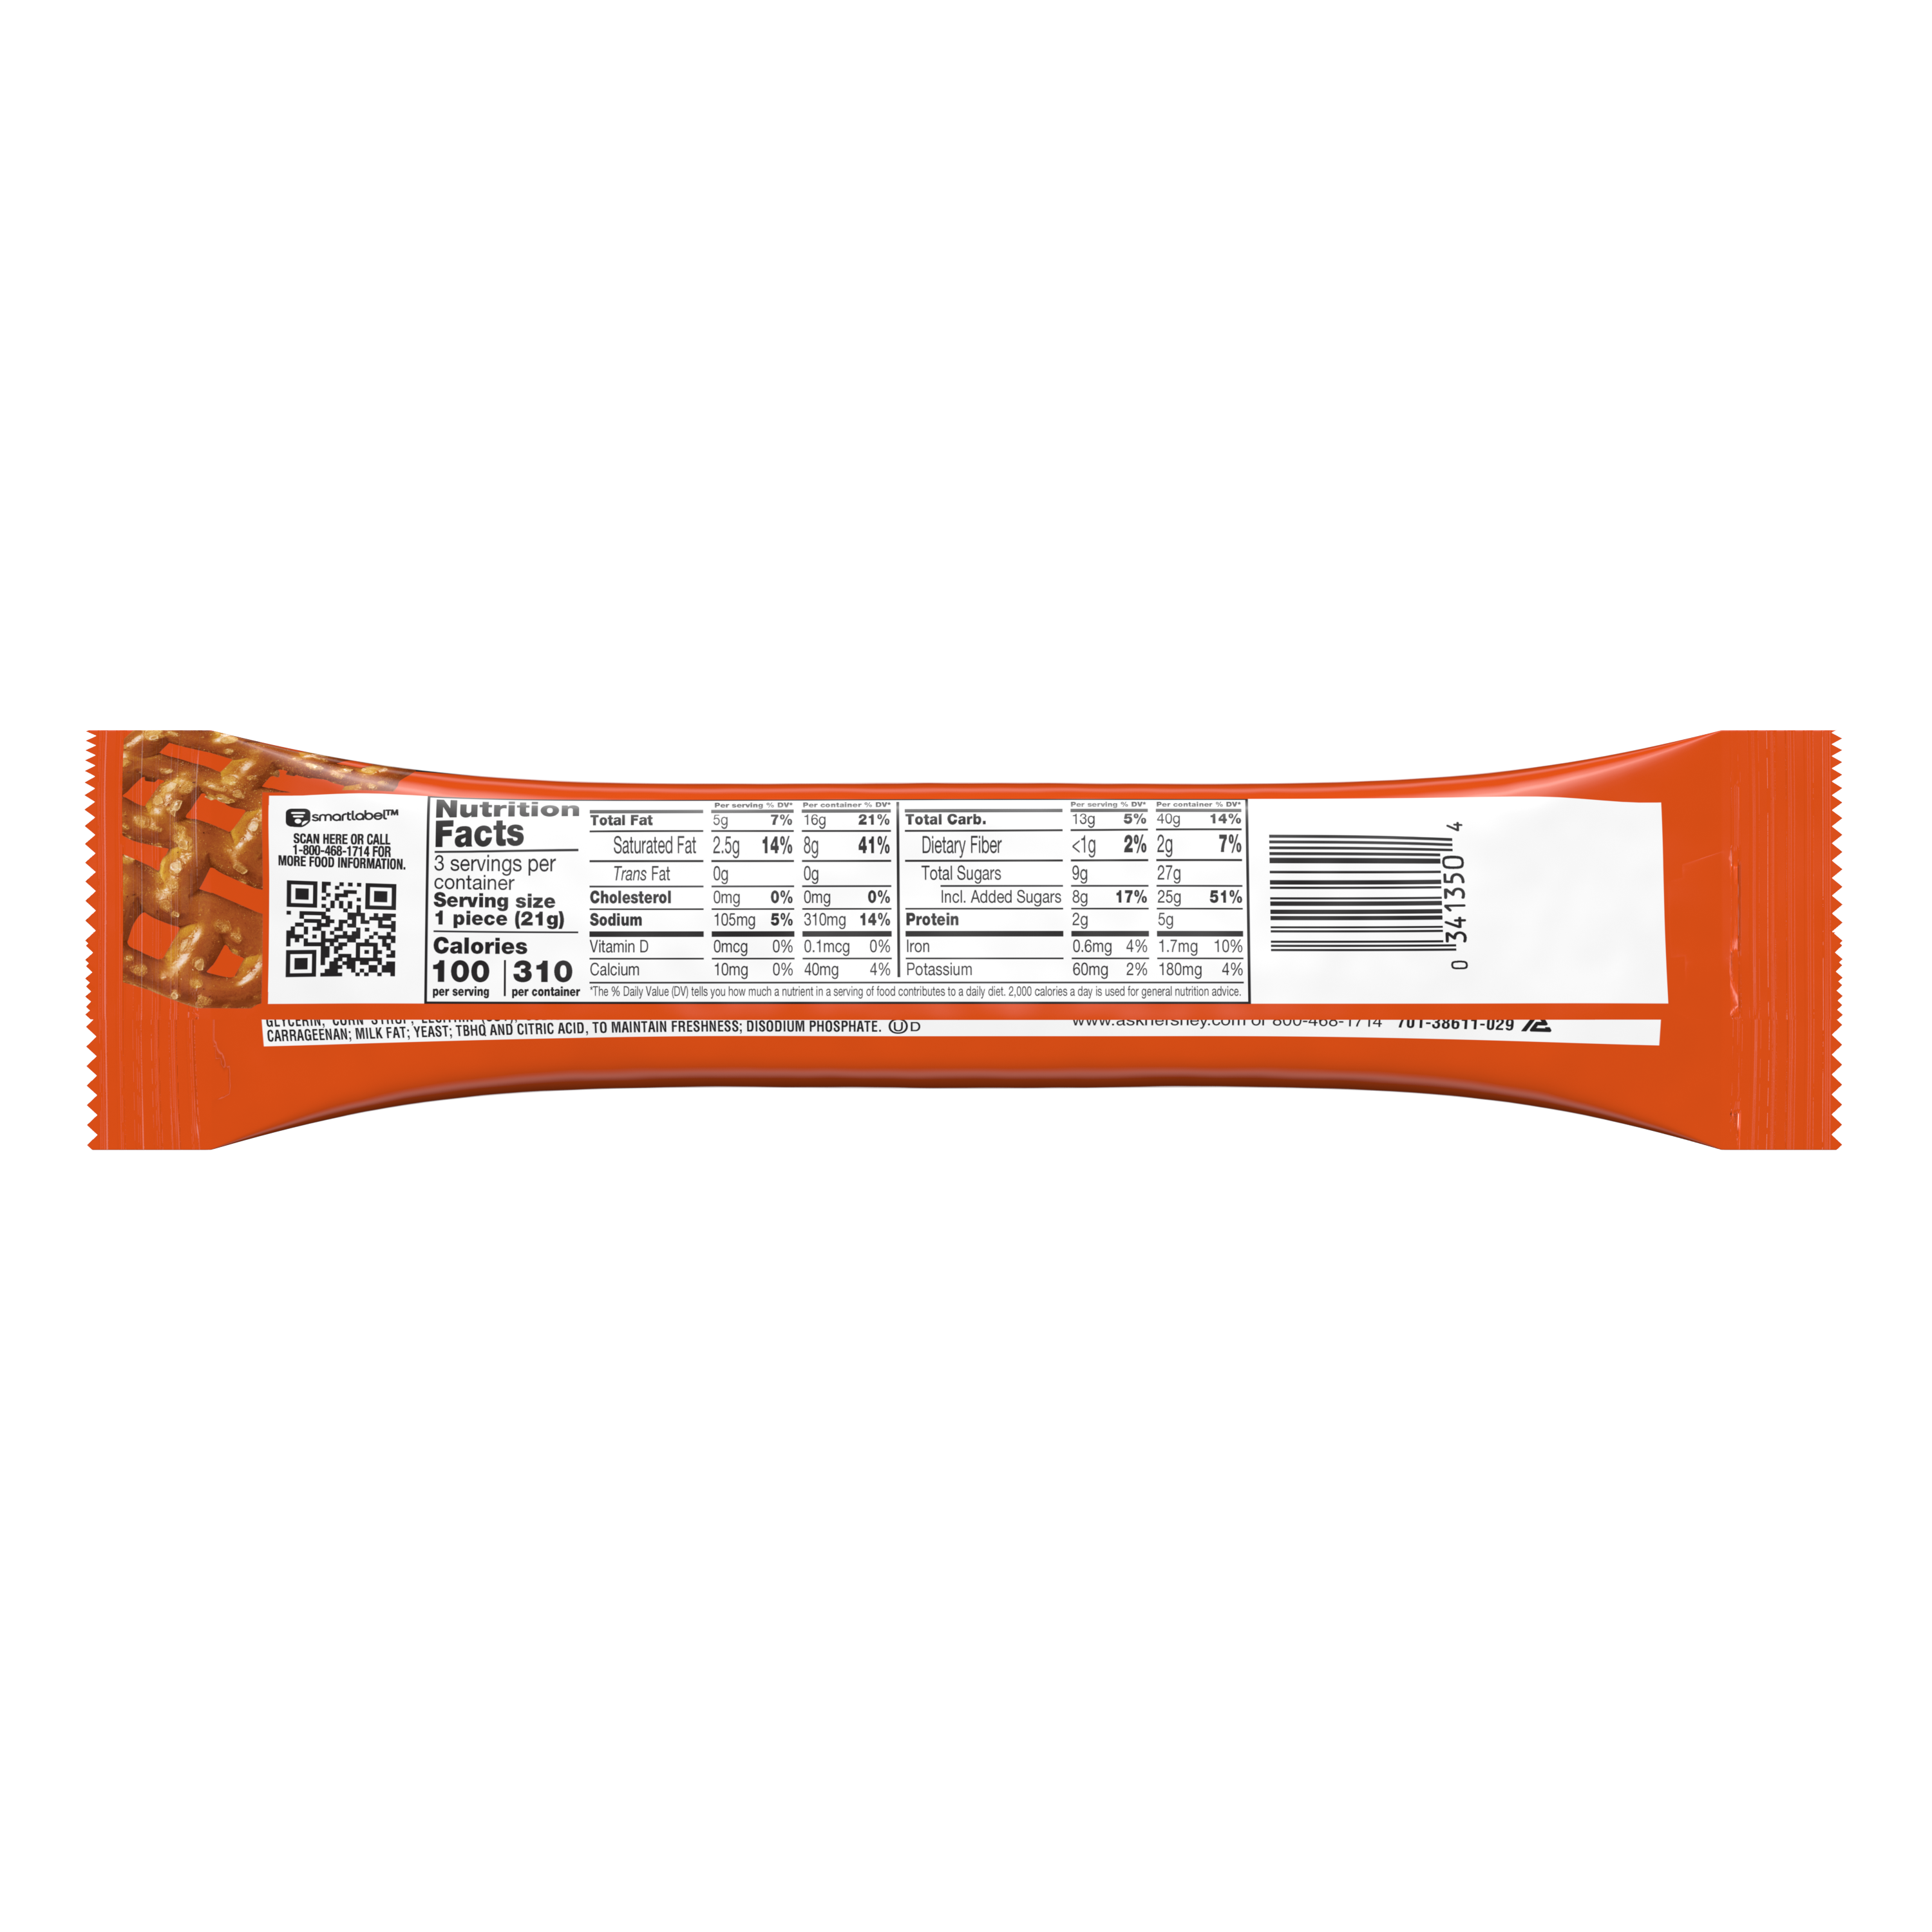 REESE'S TAKE5 Chocolate Peanut Butter King Size Candy Bar, 2.25 oz - Back of Package